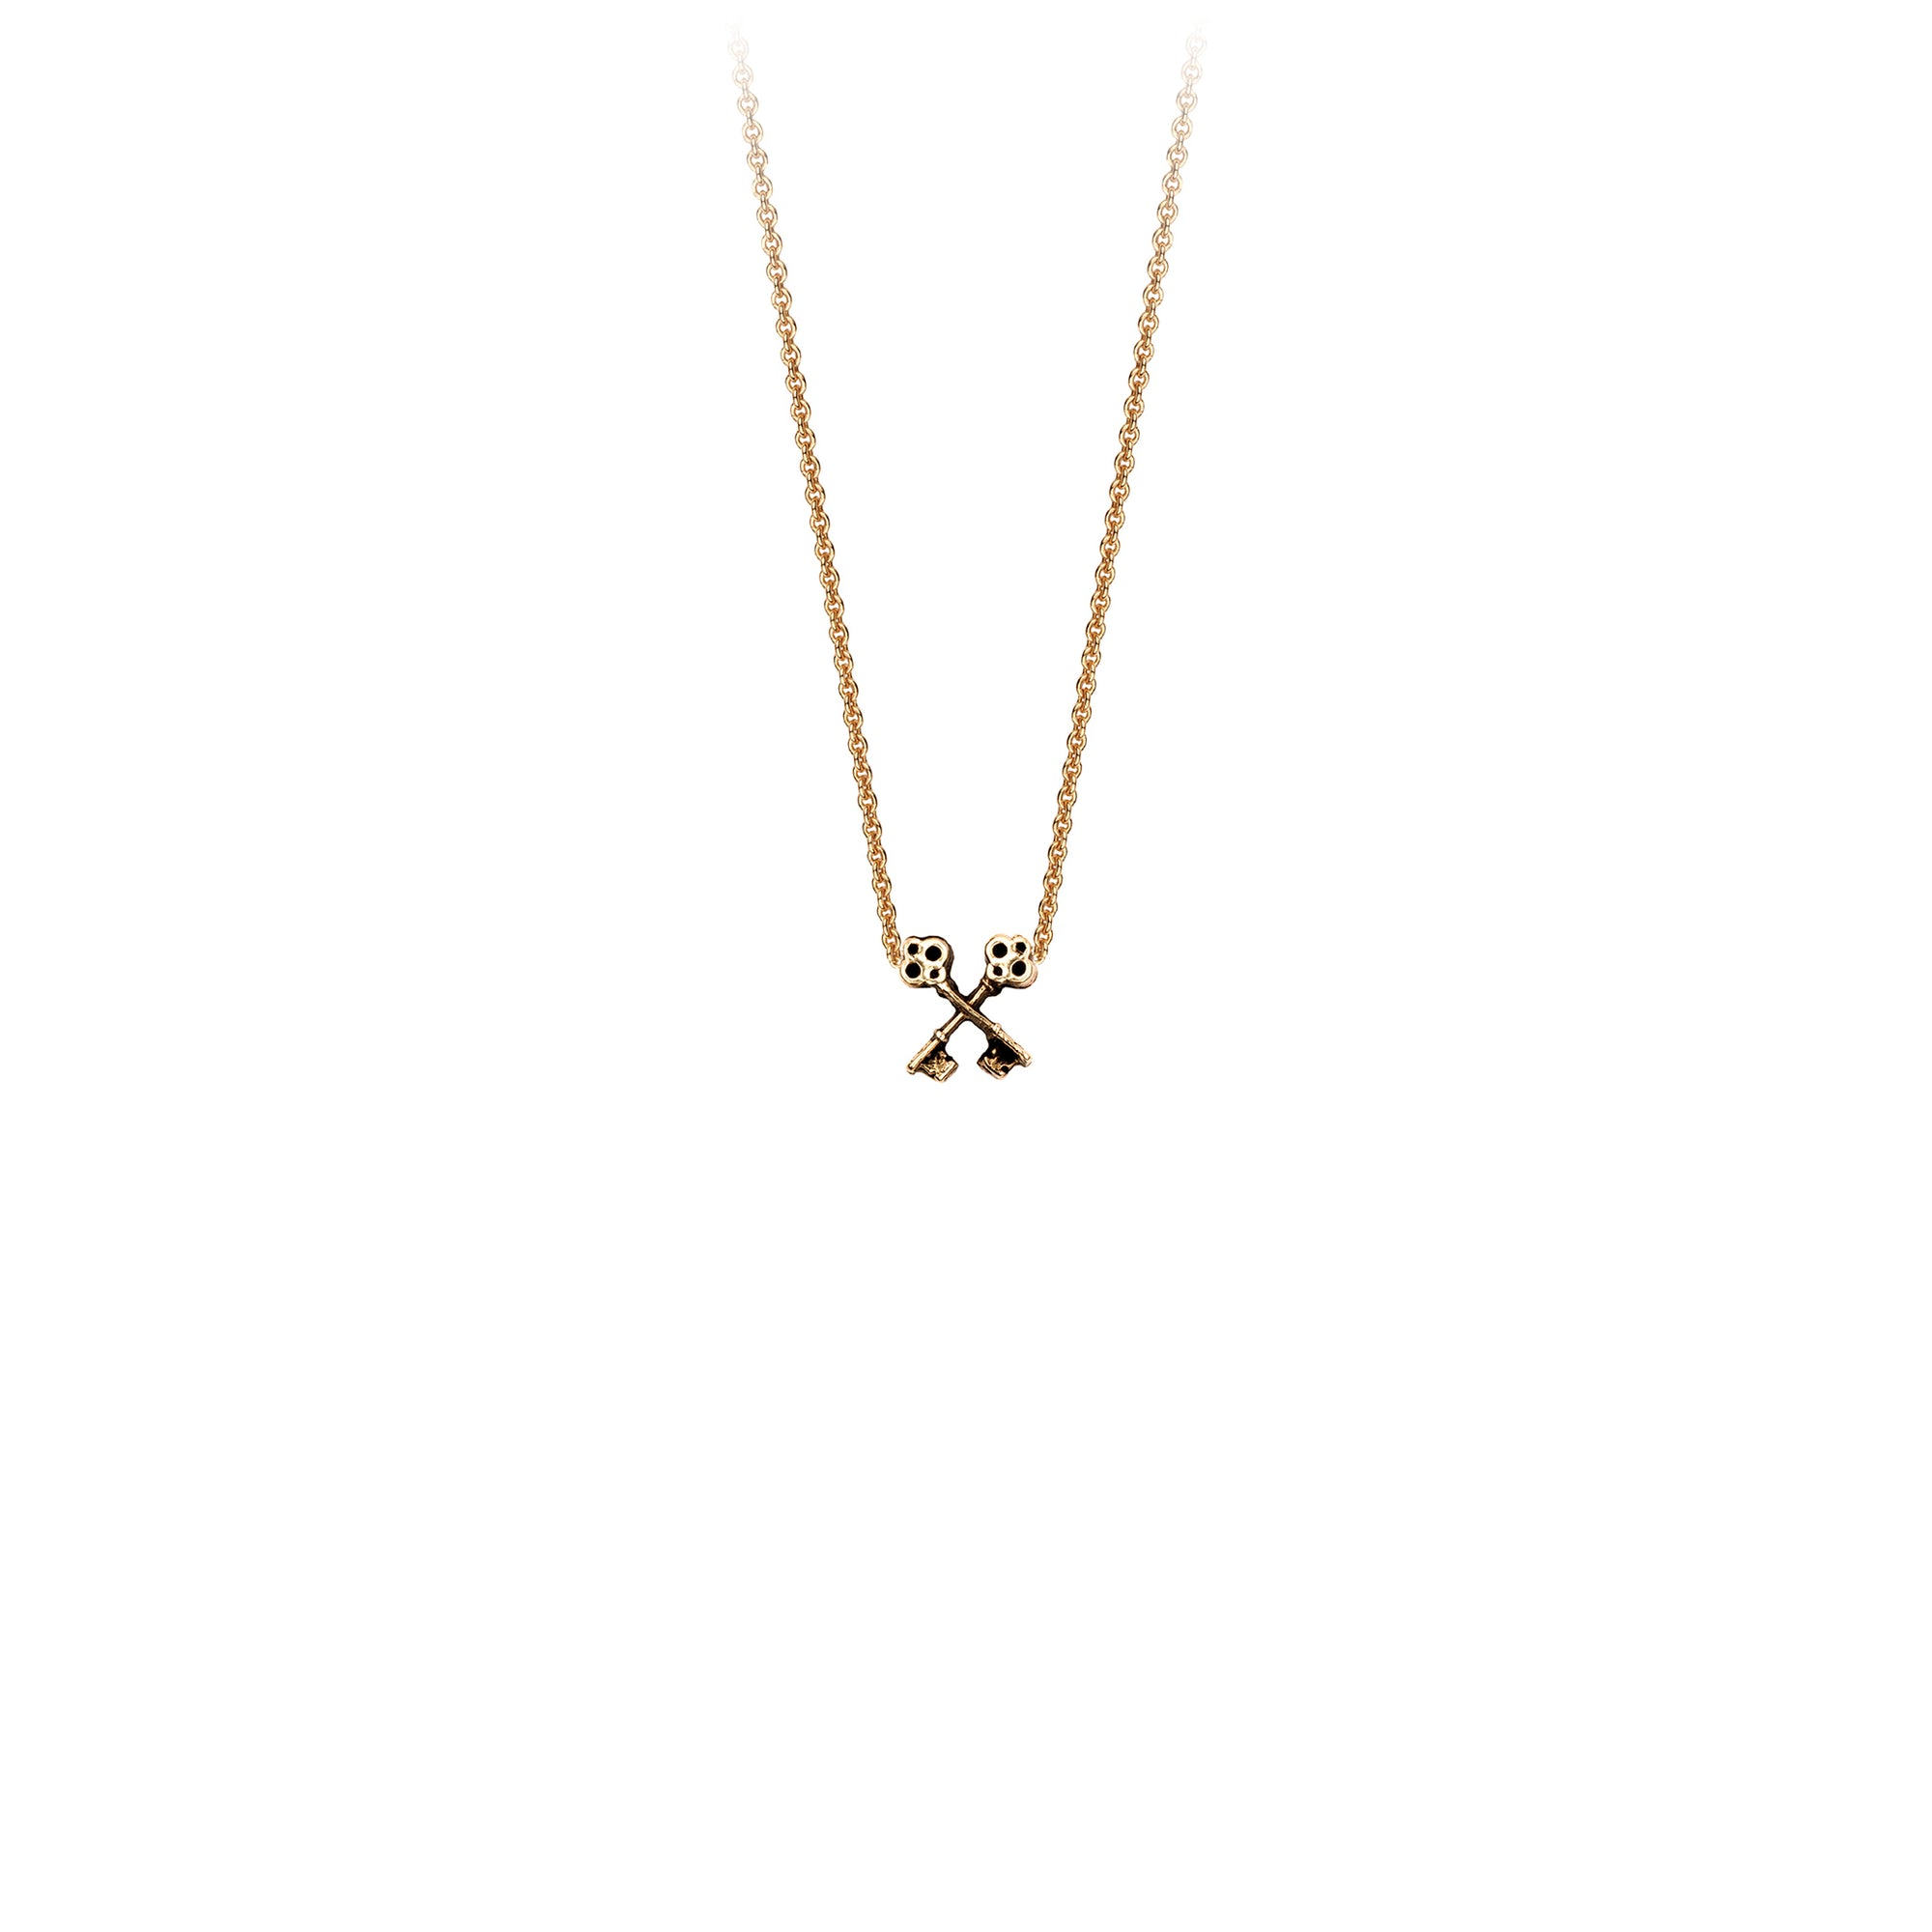 Pyrrha Crossed Keys 14K Gold Symbol Charm Necklace